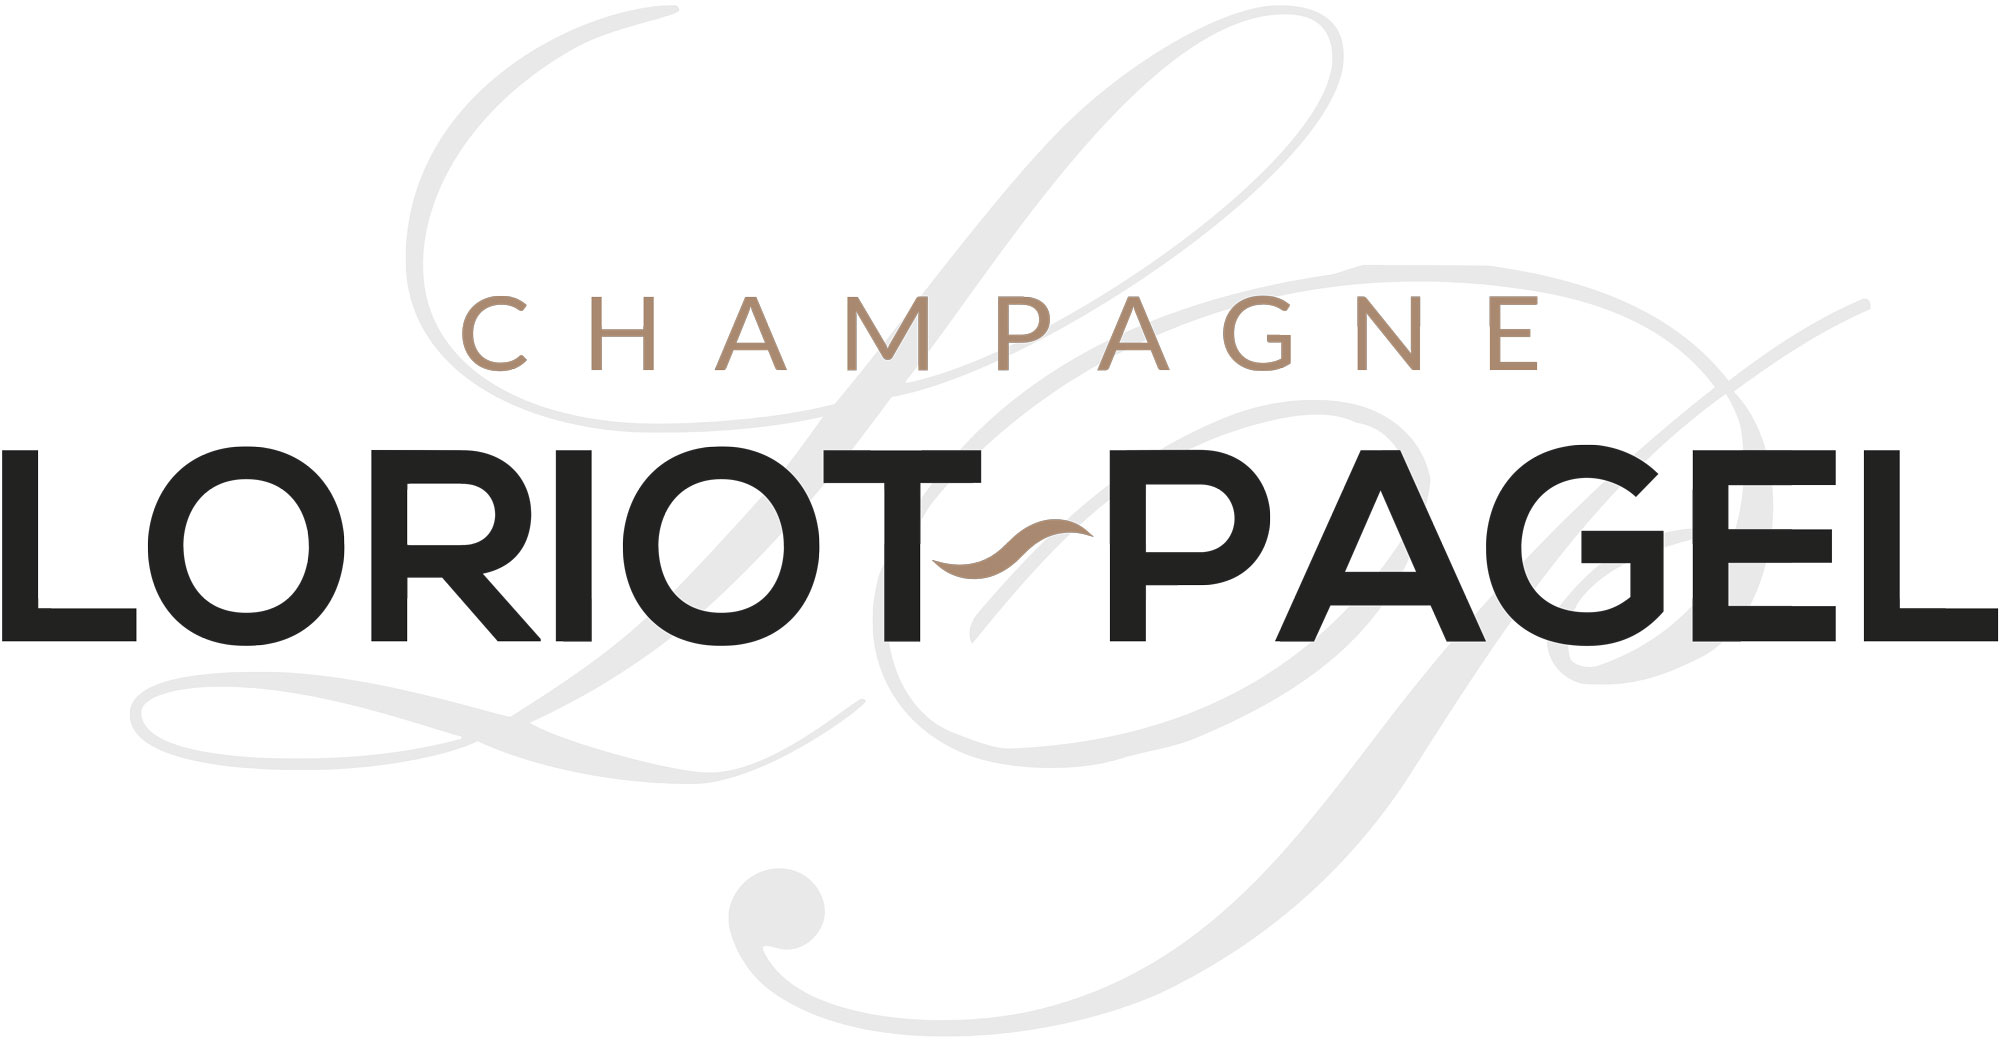 Loriot-Pagel Champagne